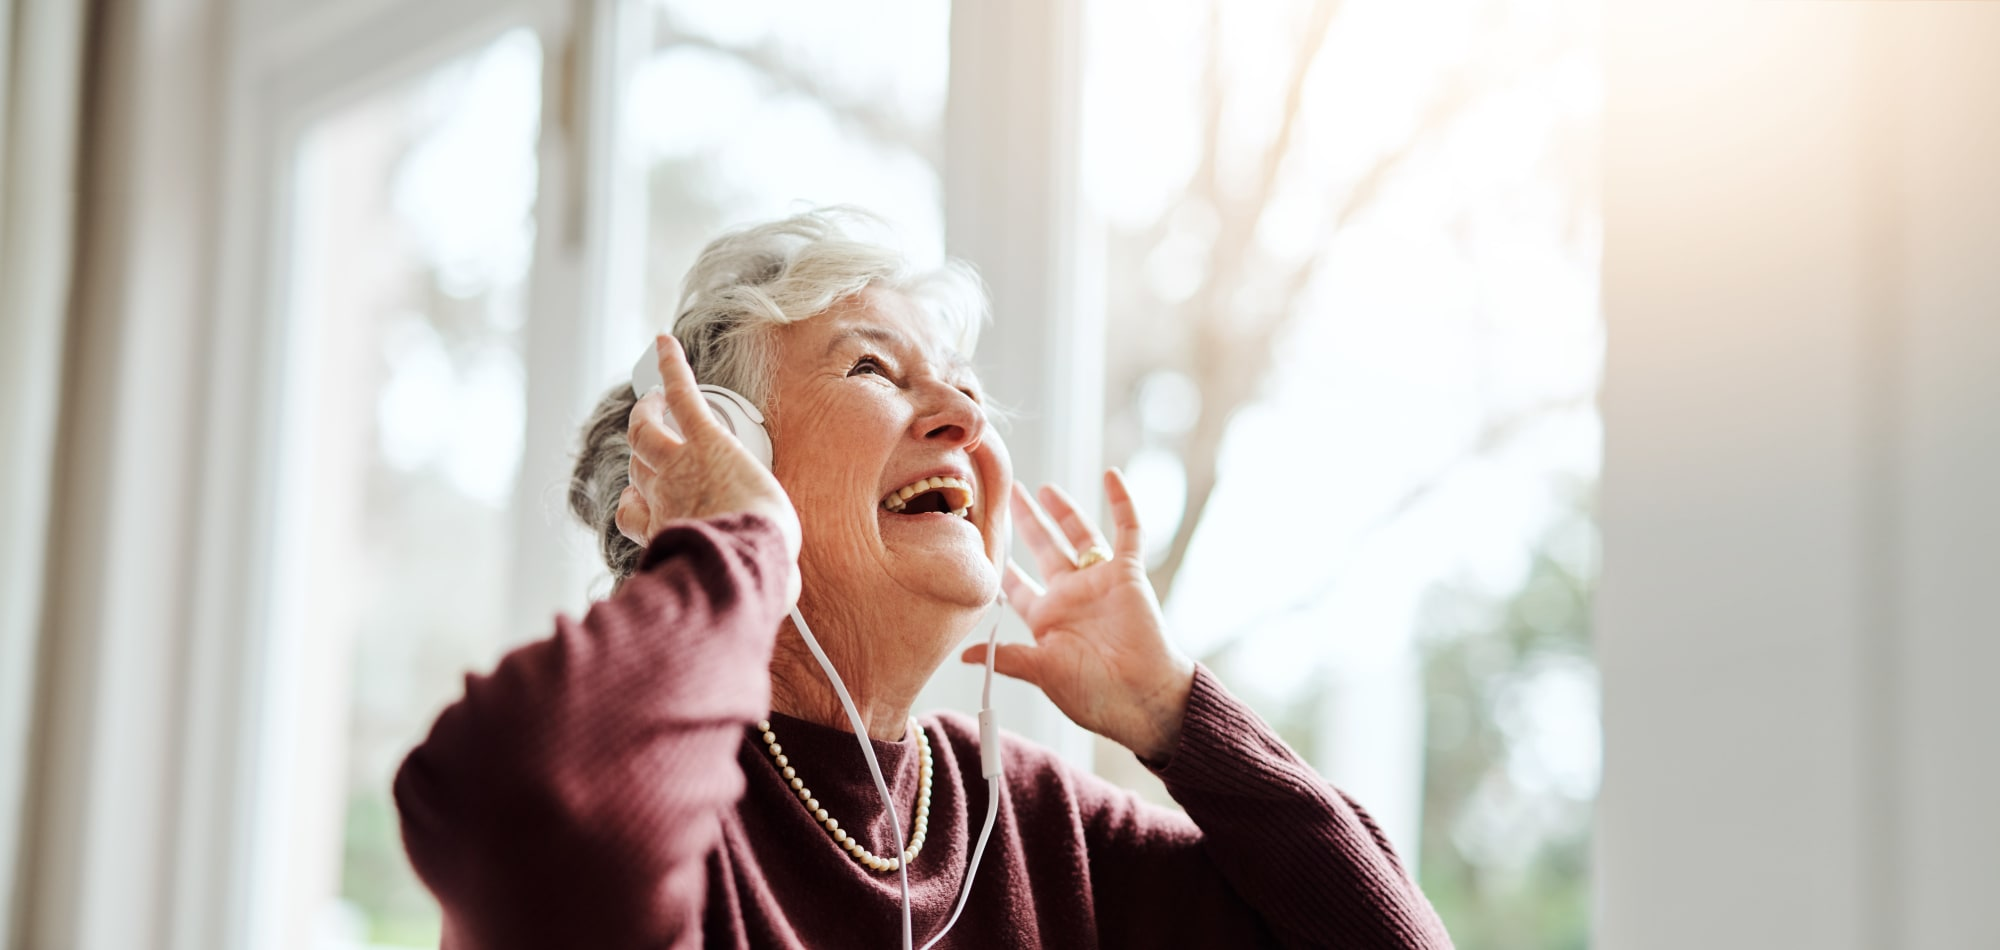 Activities and events at Milestone Senior Living in Eau Claire, Wisconsin.